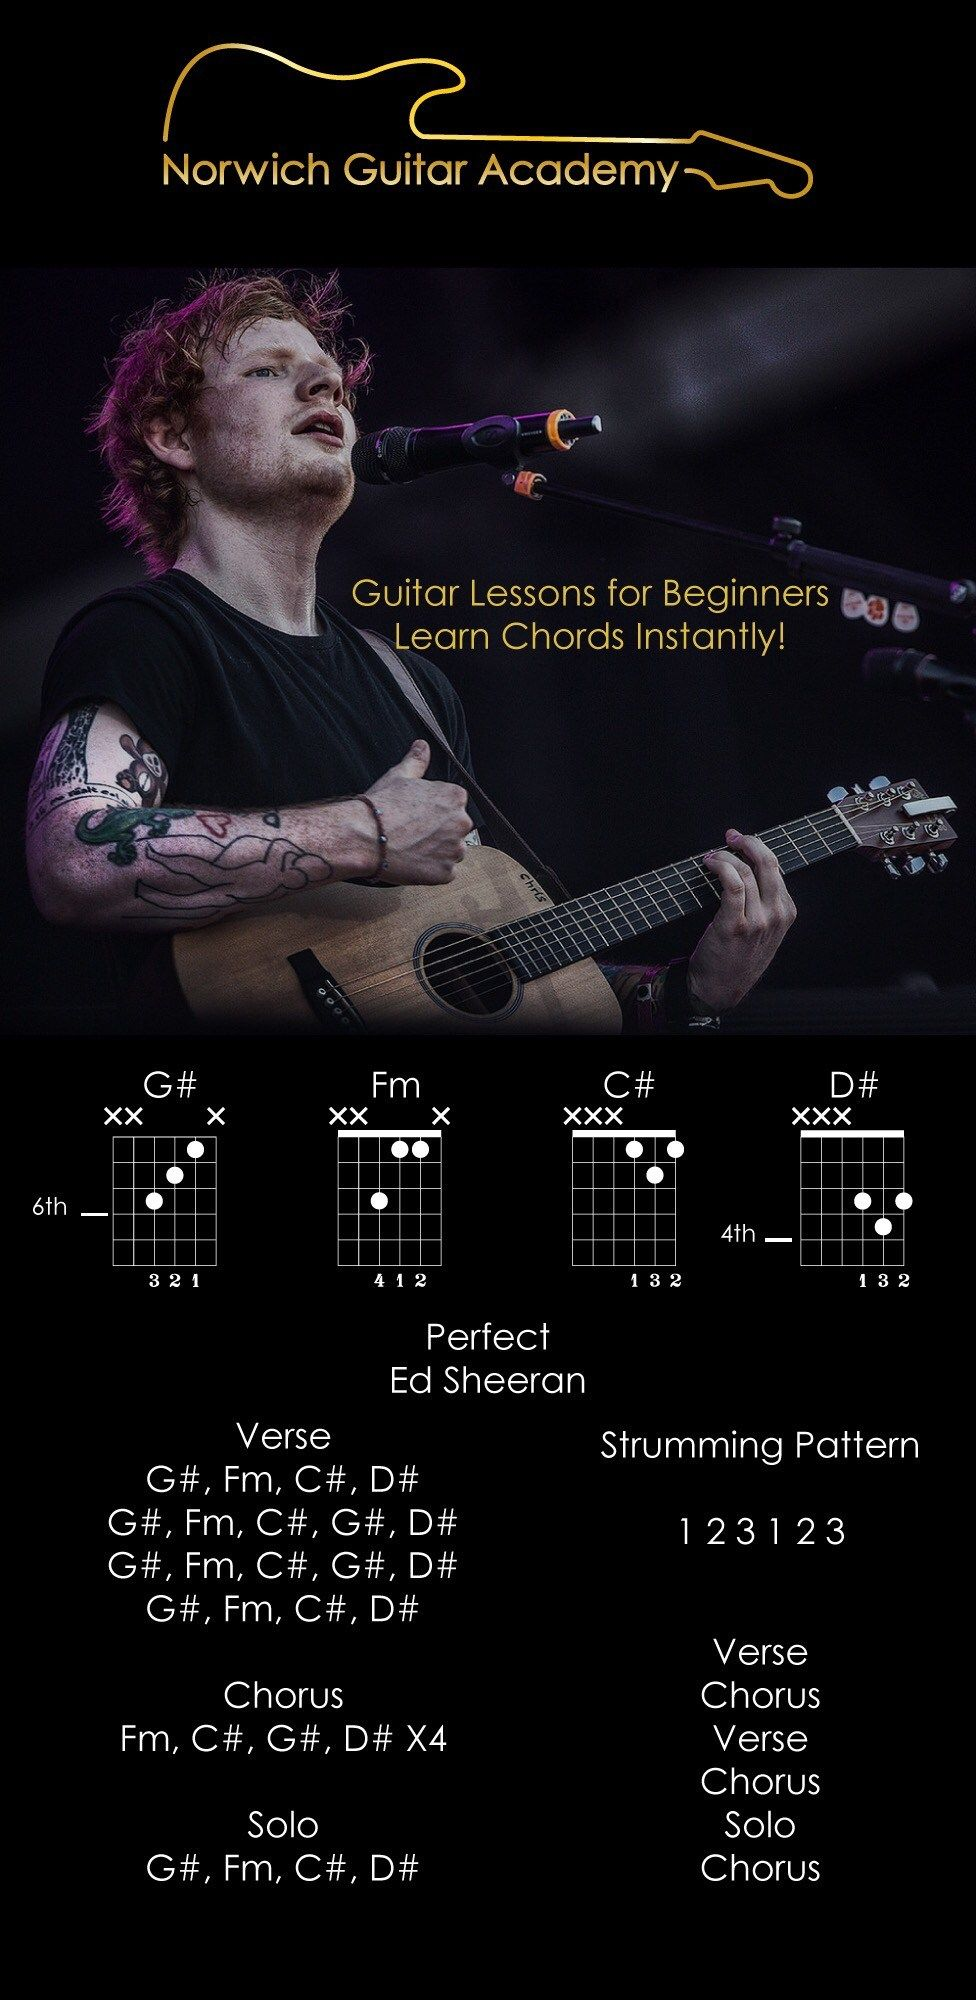 Perfect Ed Sheeran Chords Beginner Guitar Lesson Lyrics Music How To Read Chord Diagrams Learn Play Easy